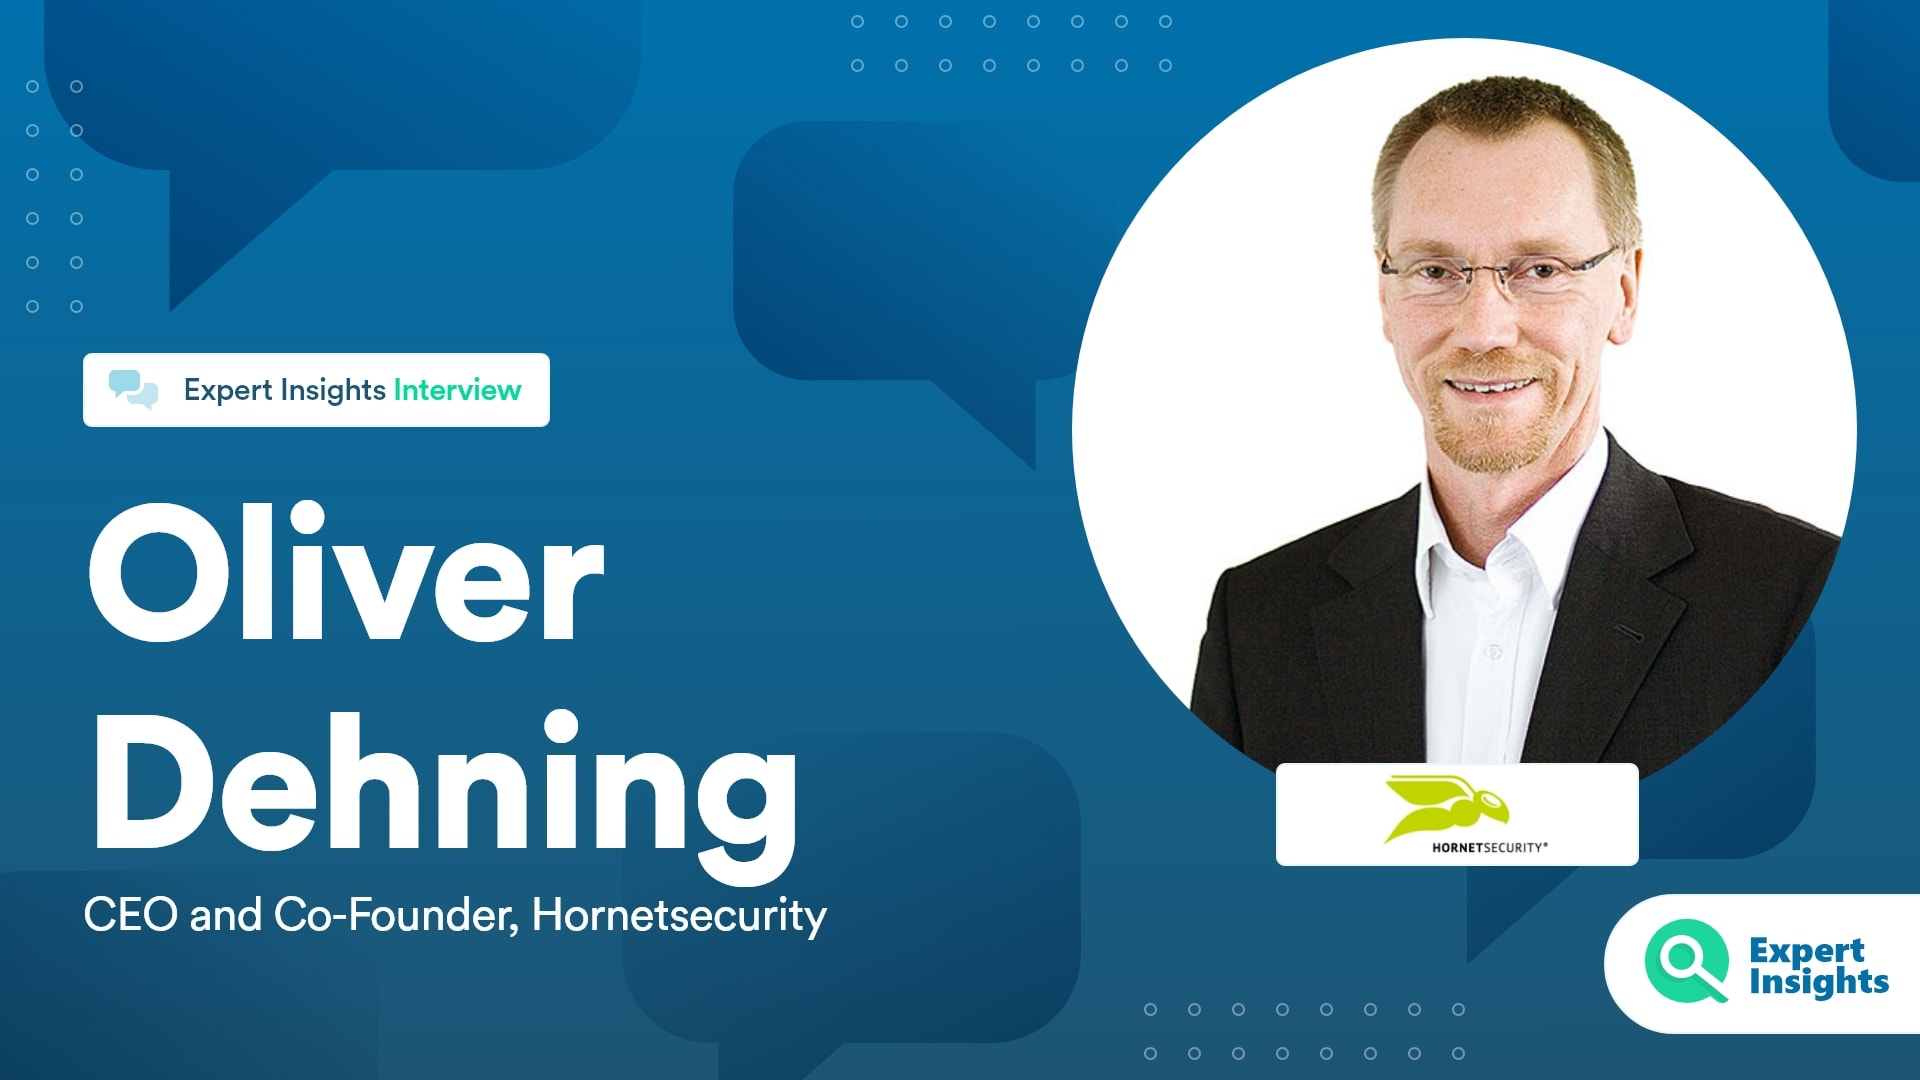 Expert Insights Interview With Oliver Dehning Of Hornetsecurity